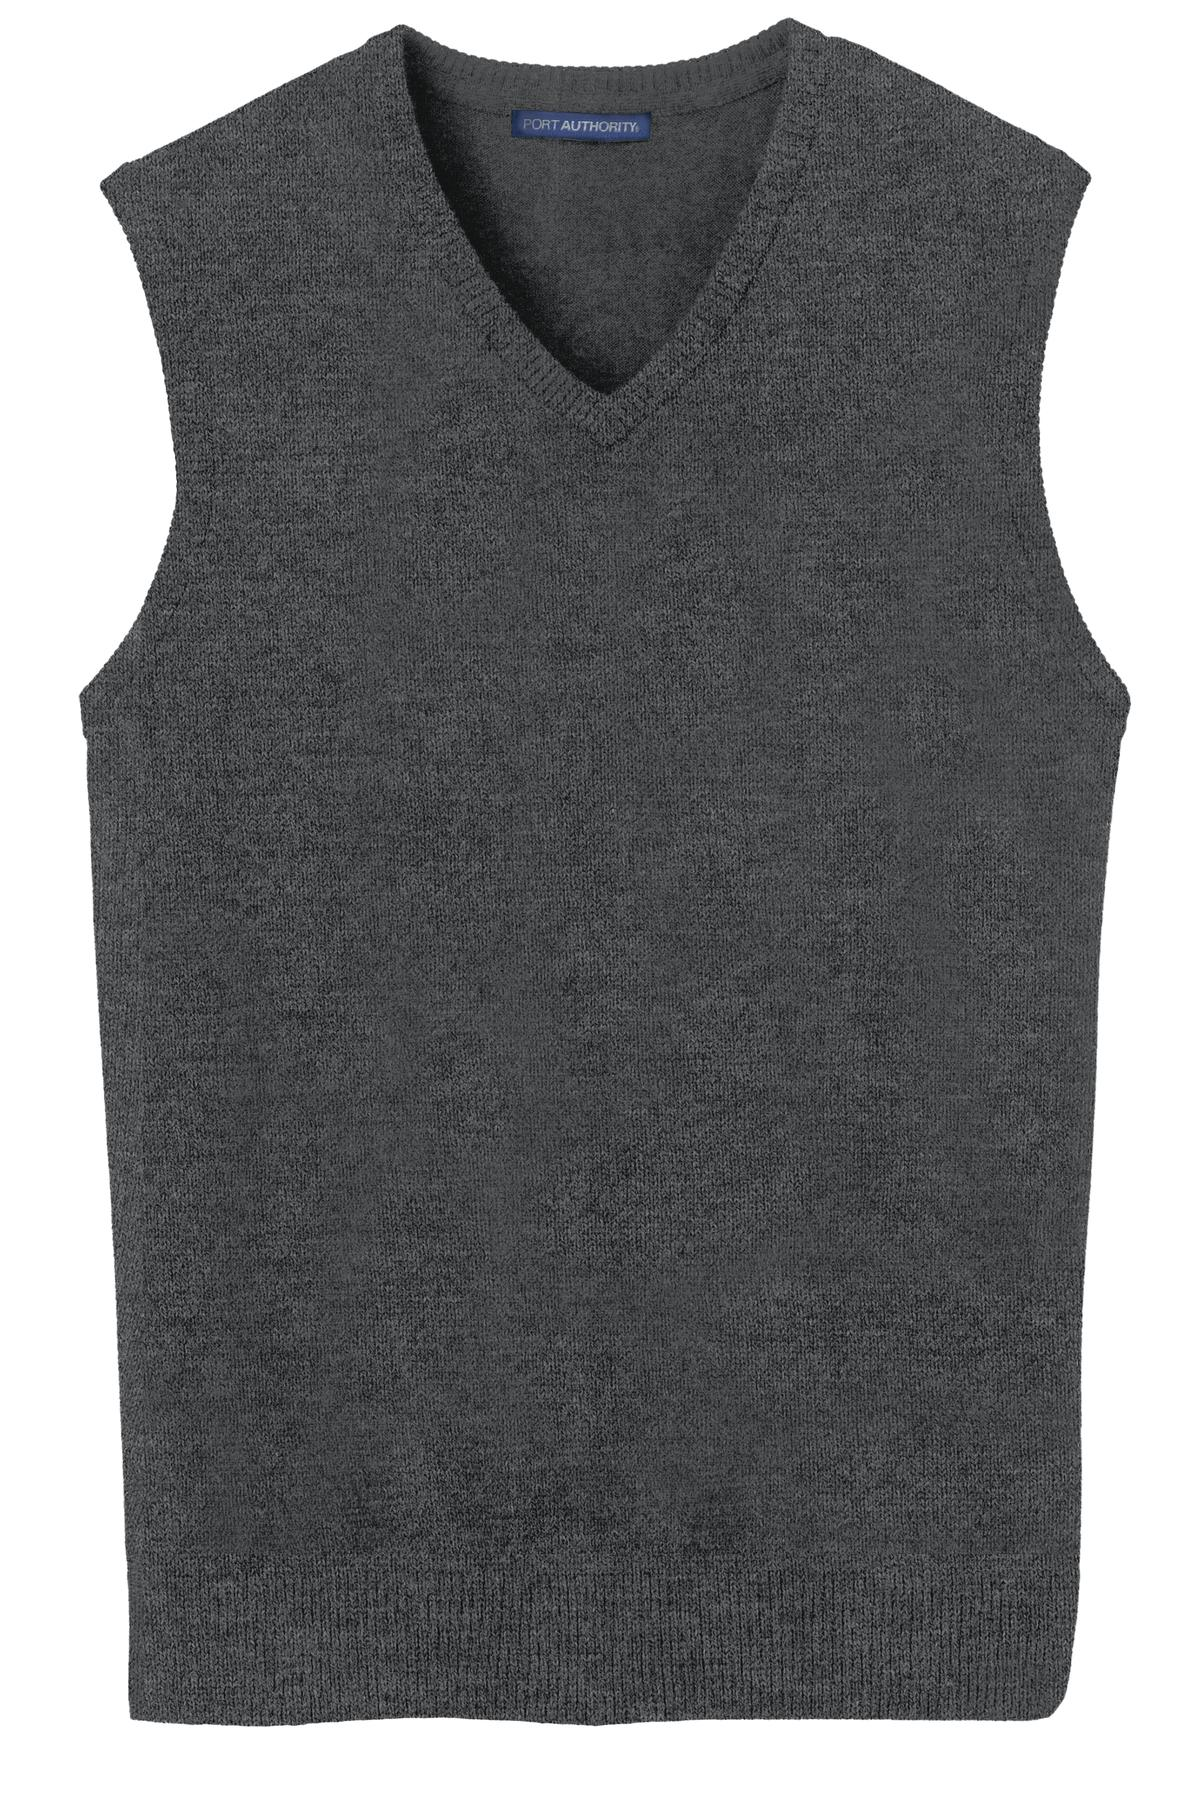 REALTOR® Mens Sweater Vest (RCG1350)